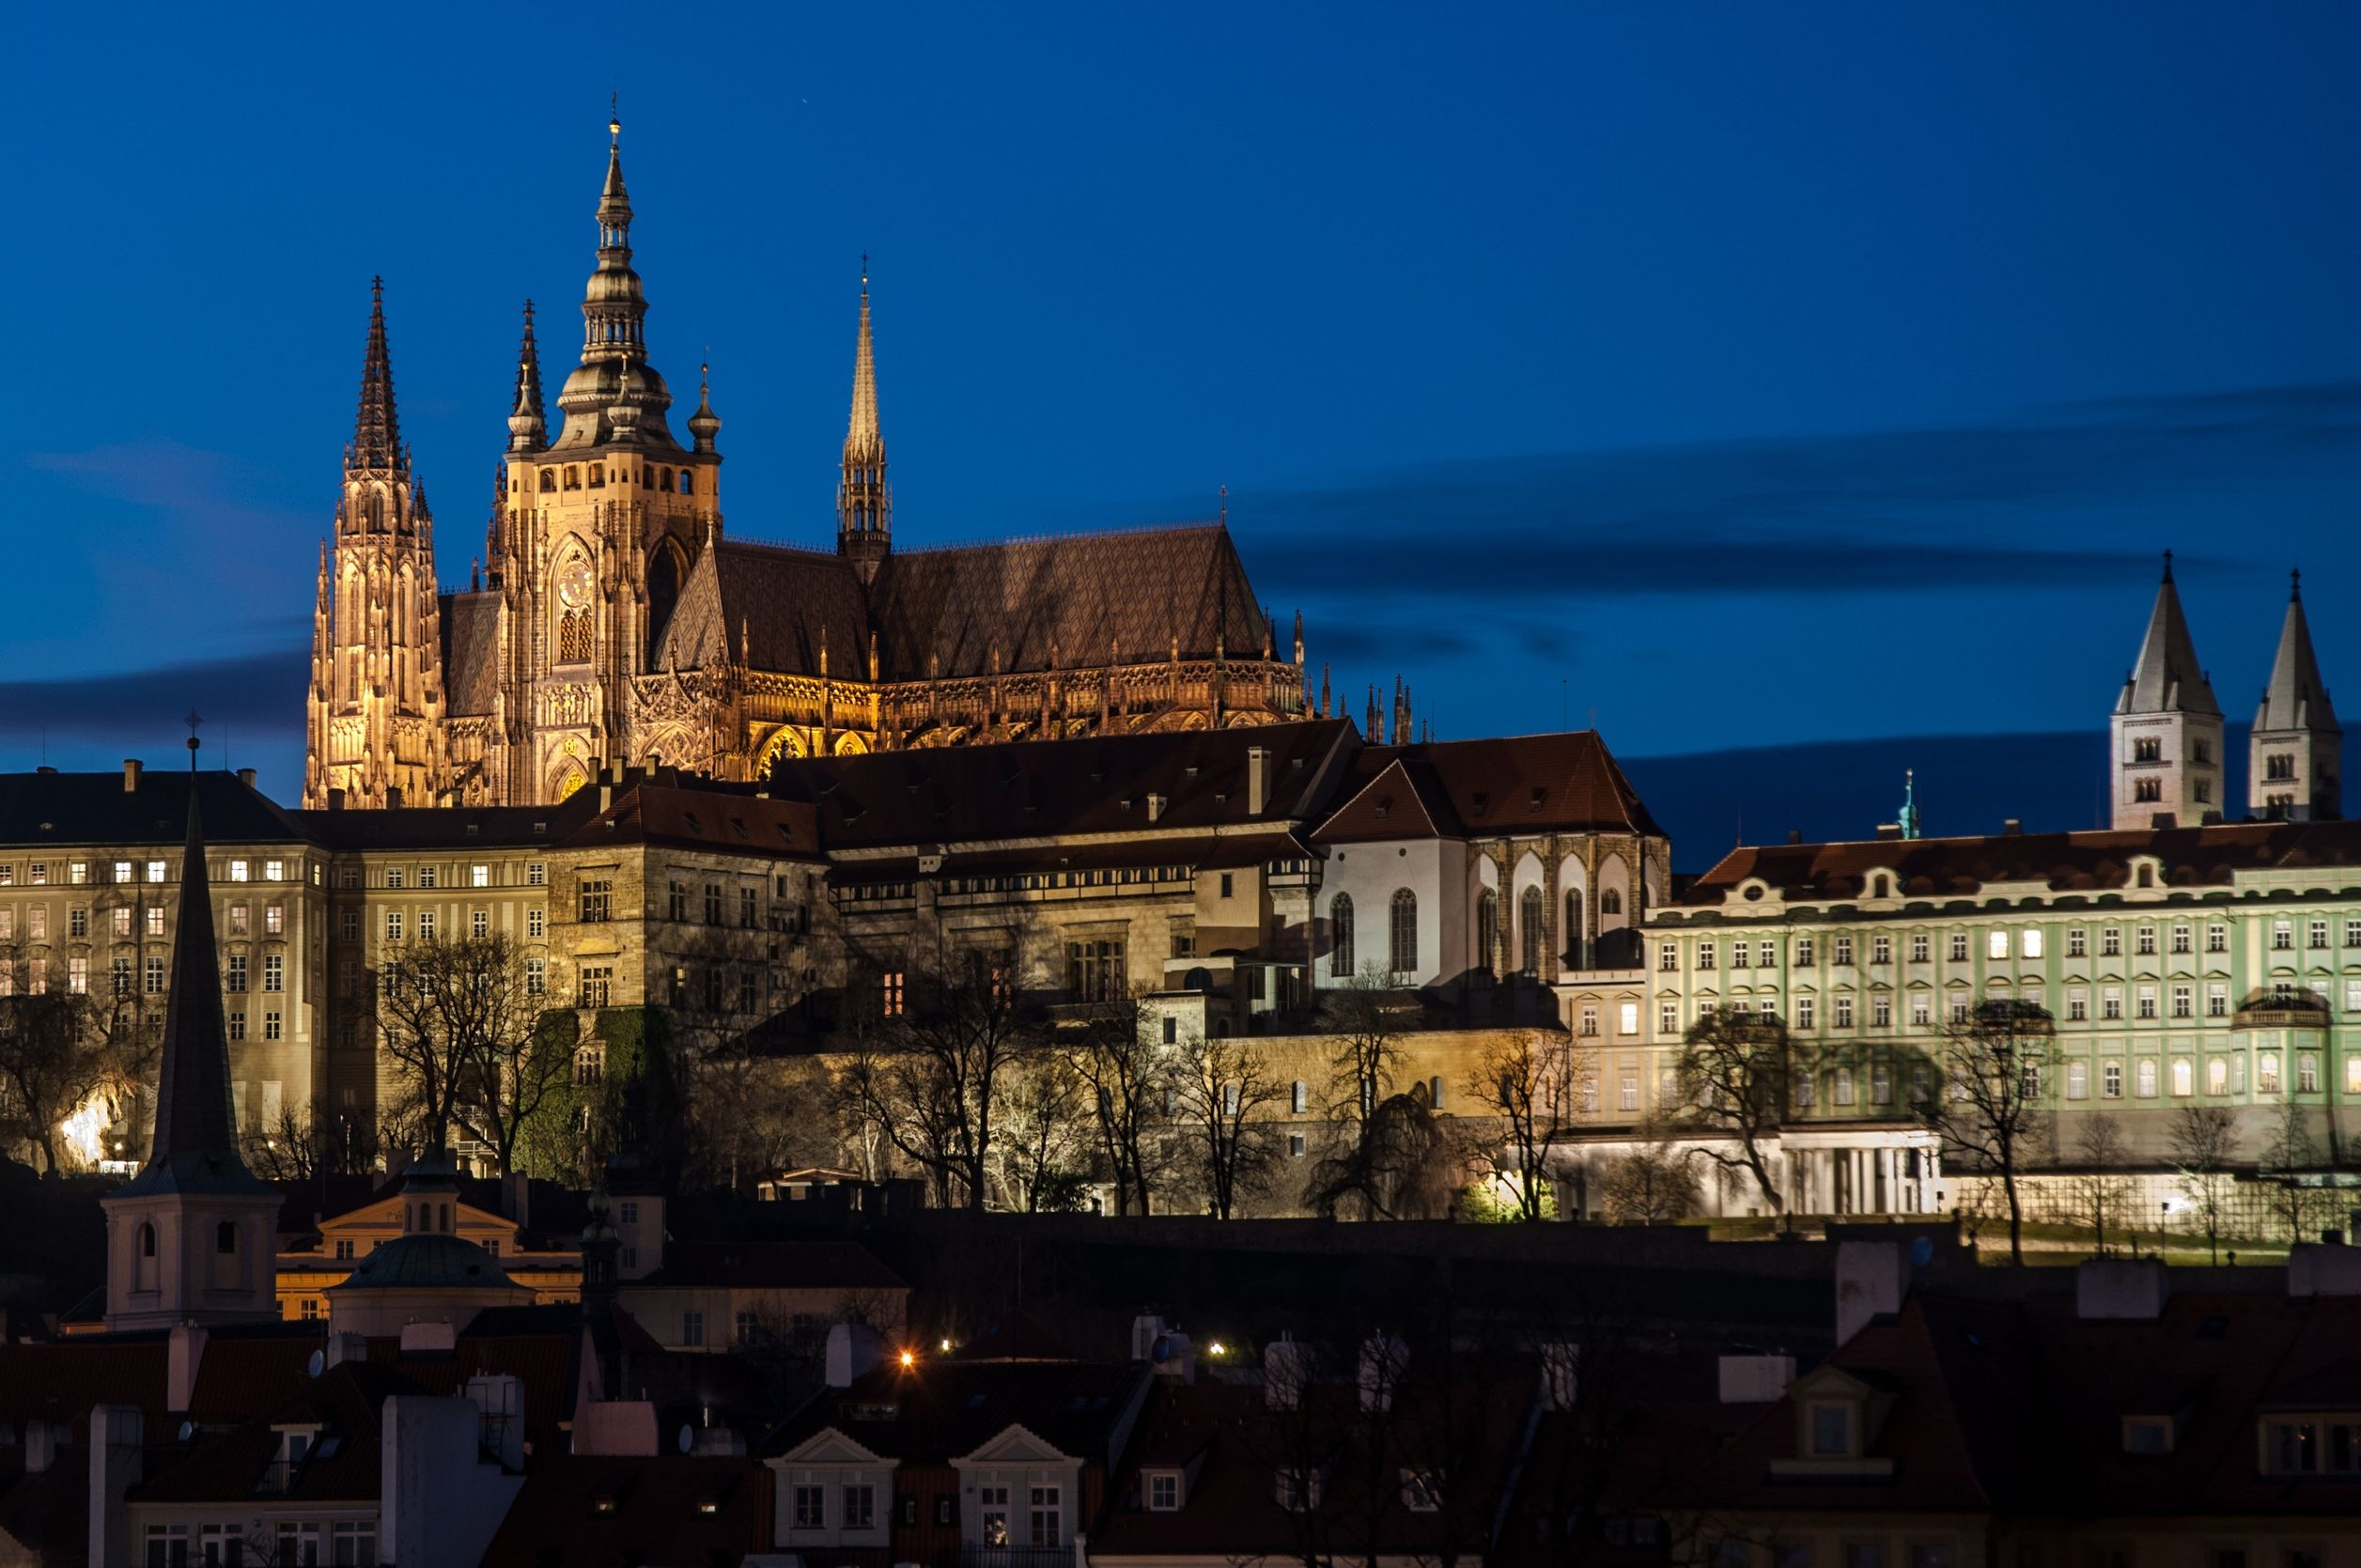 SEE & DO: PRAGUE CASTLE - UNESCO